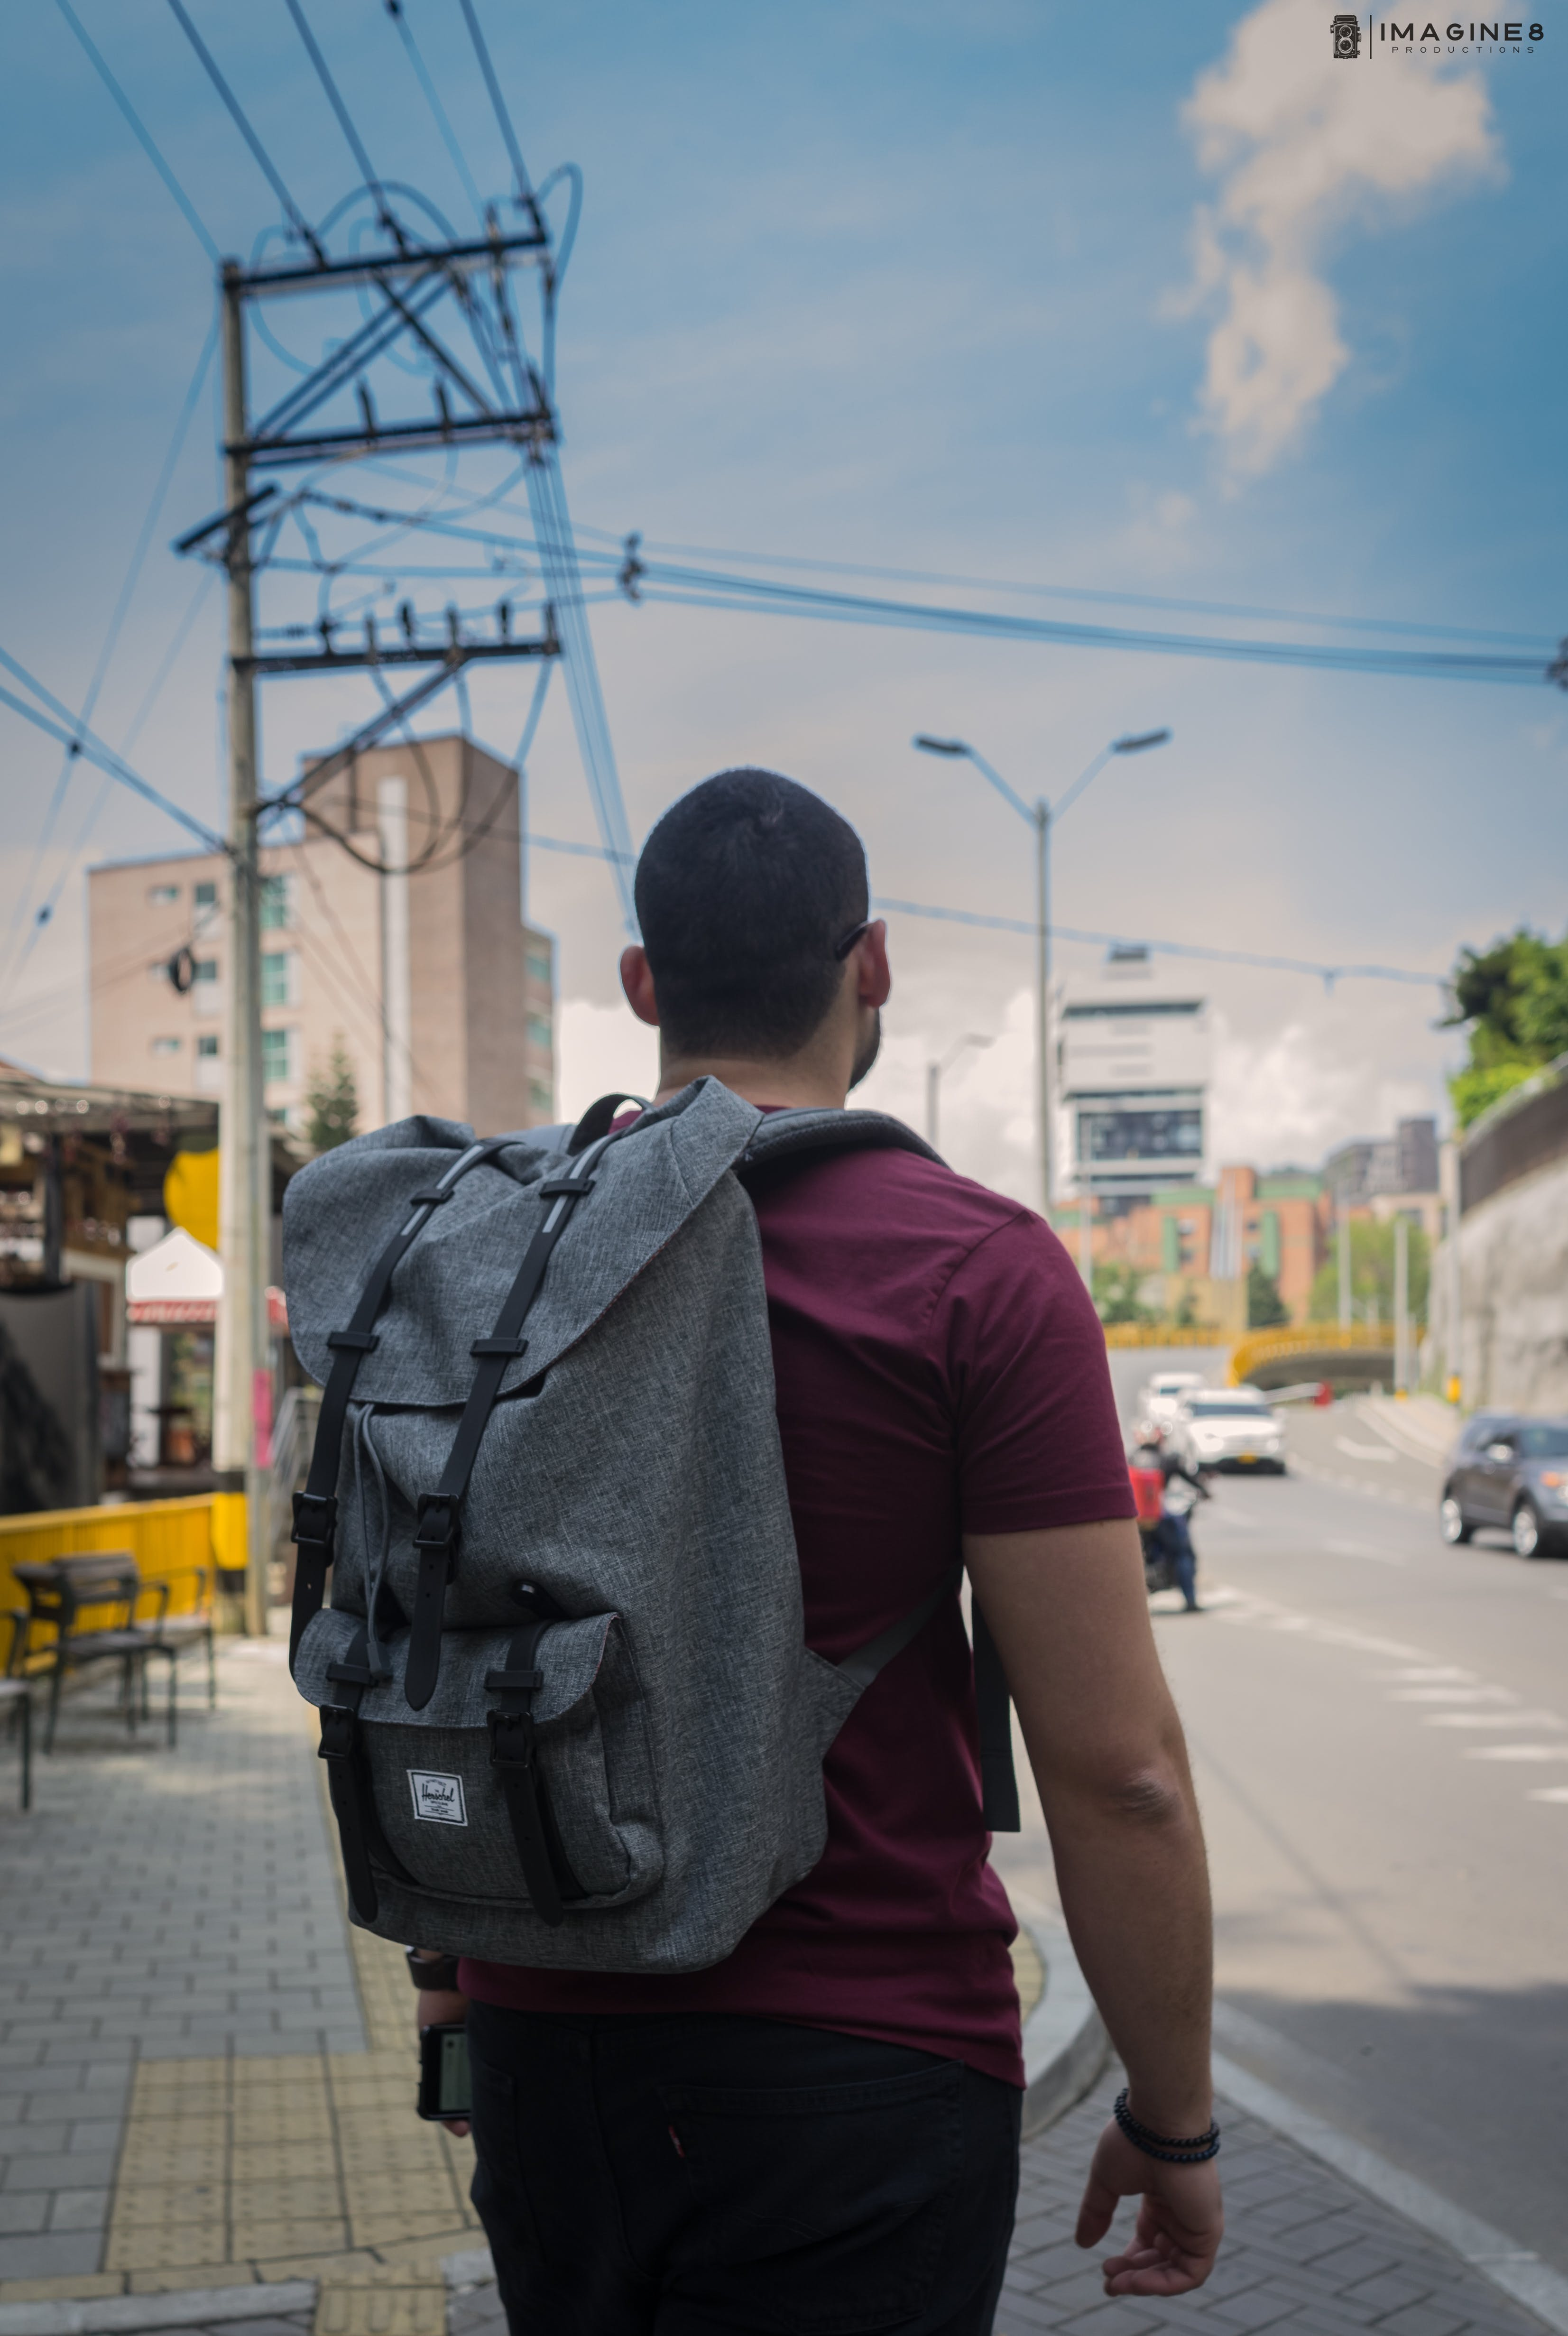 Free stock photo of #travel #herschel #backpack #exploration #colombia